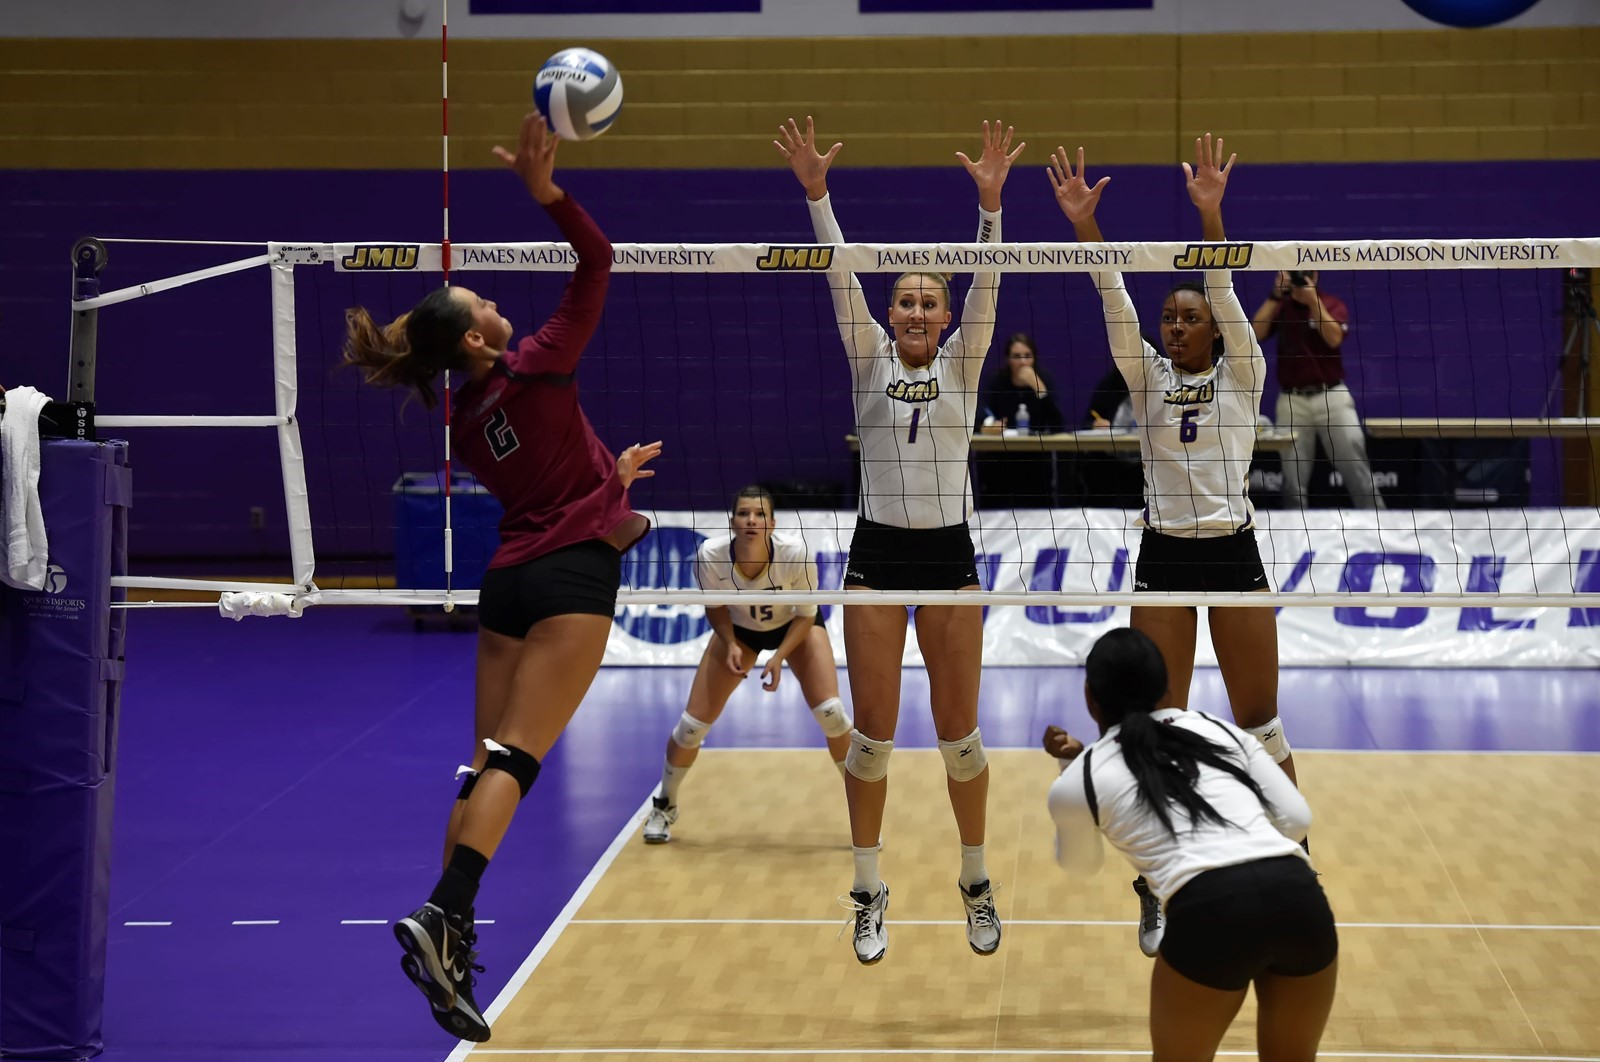 Women's Volleyball: Dukes Rally Past Georgia State to Cap Off 2-0 Day